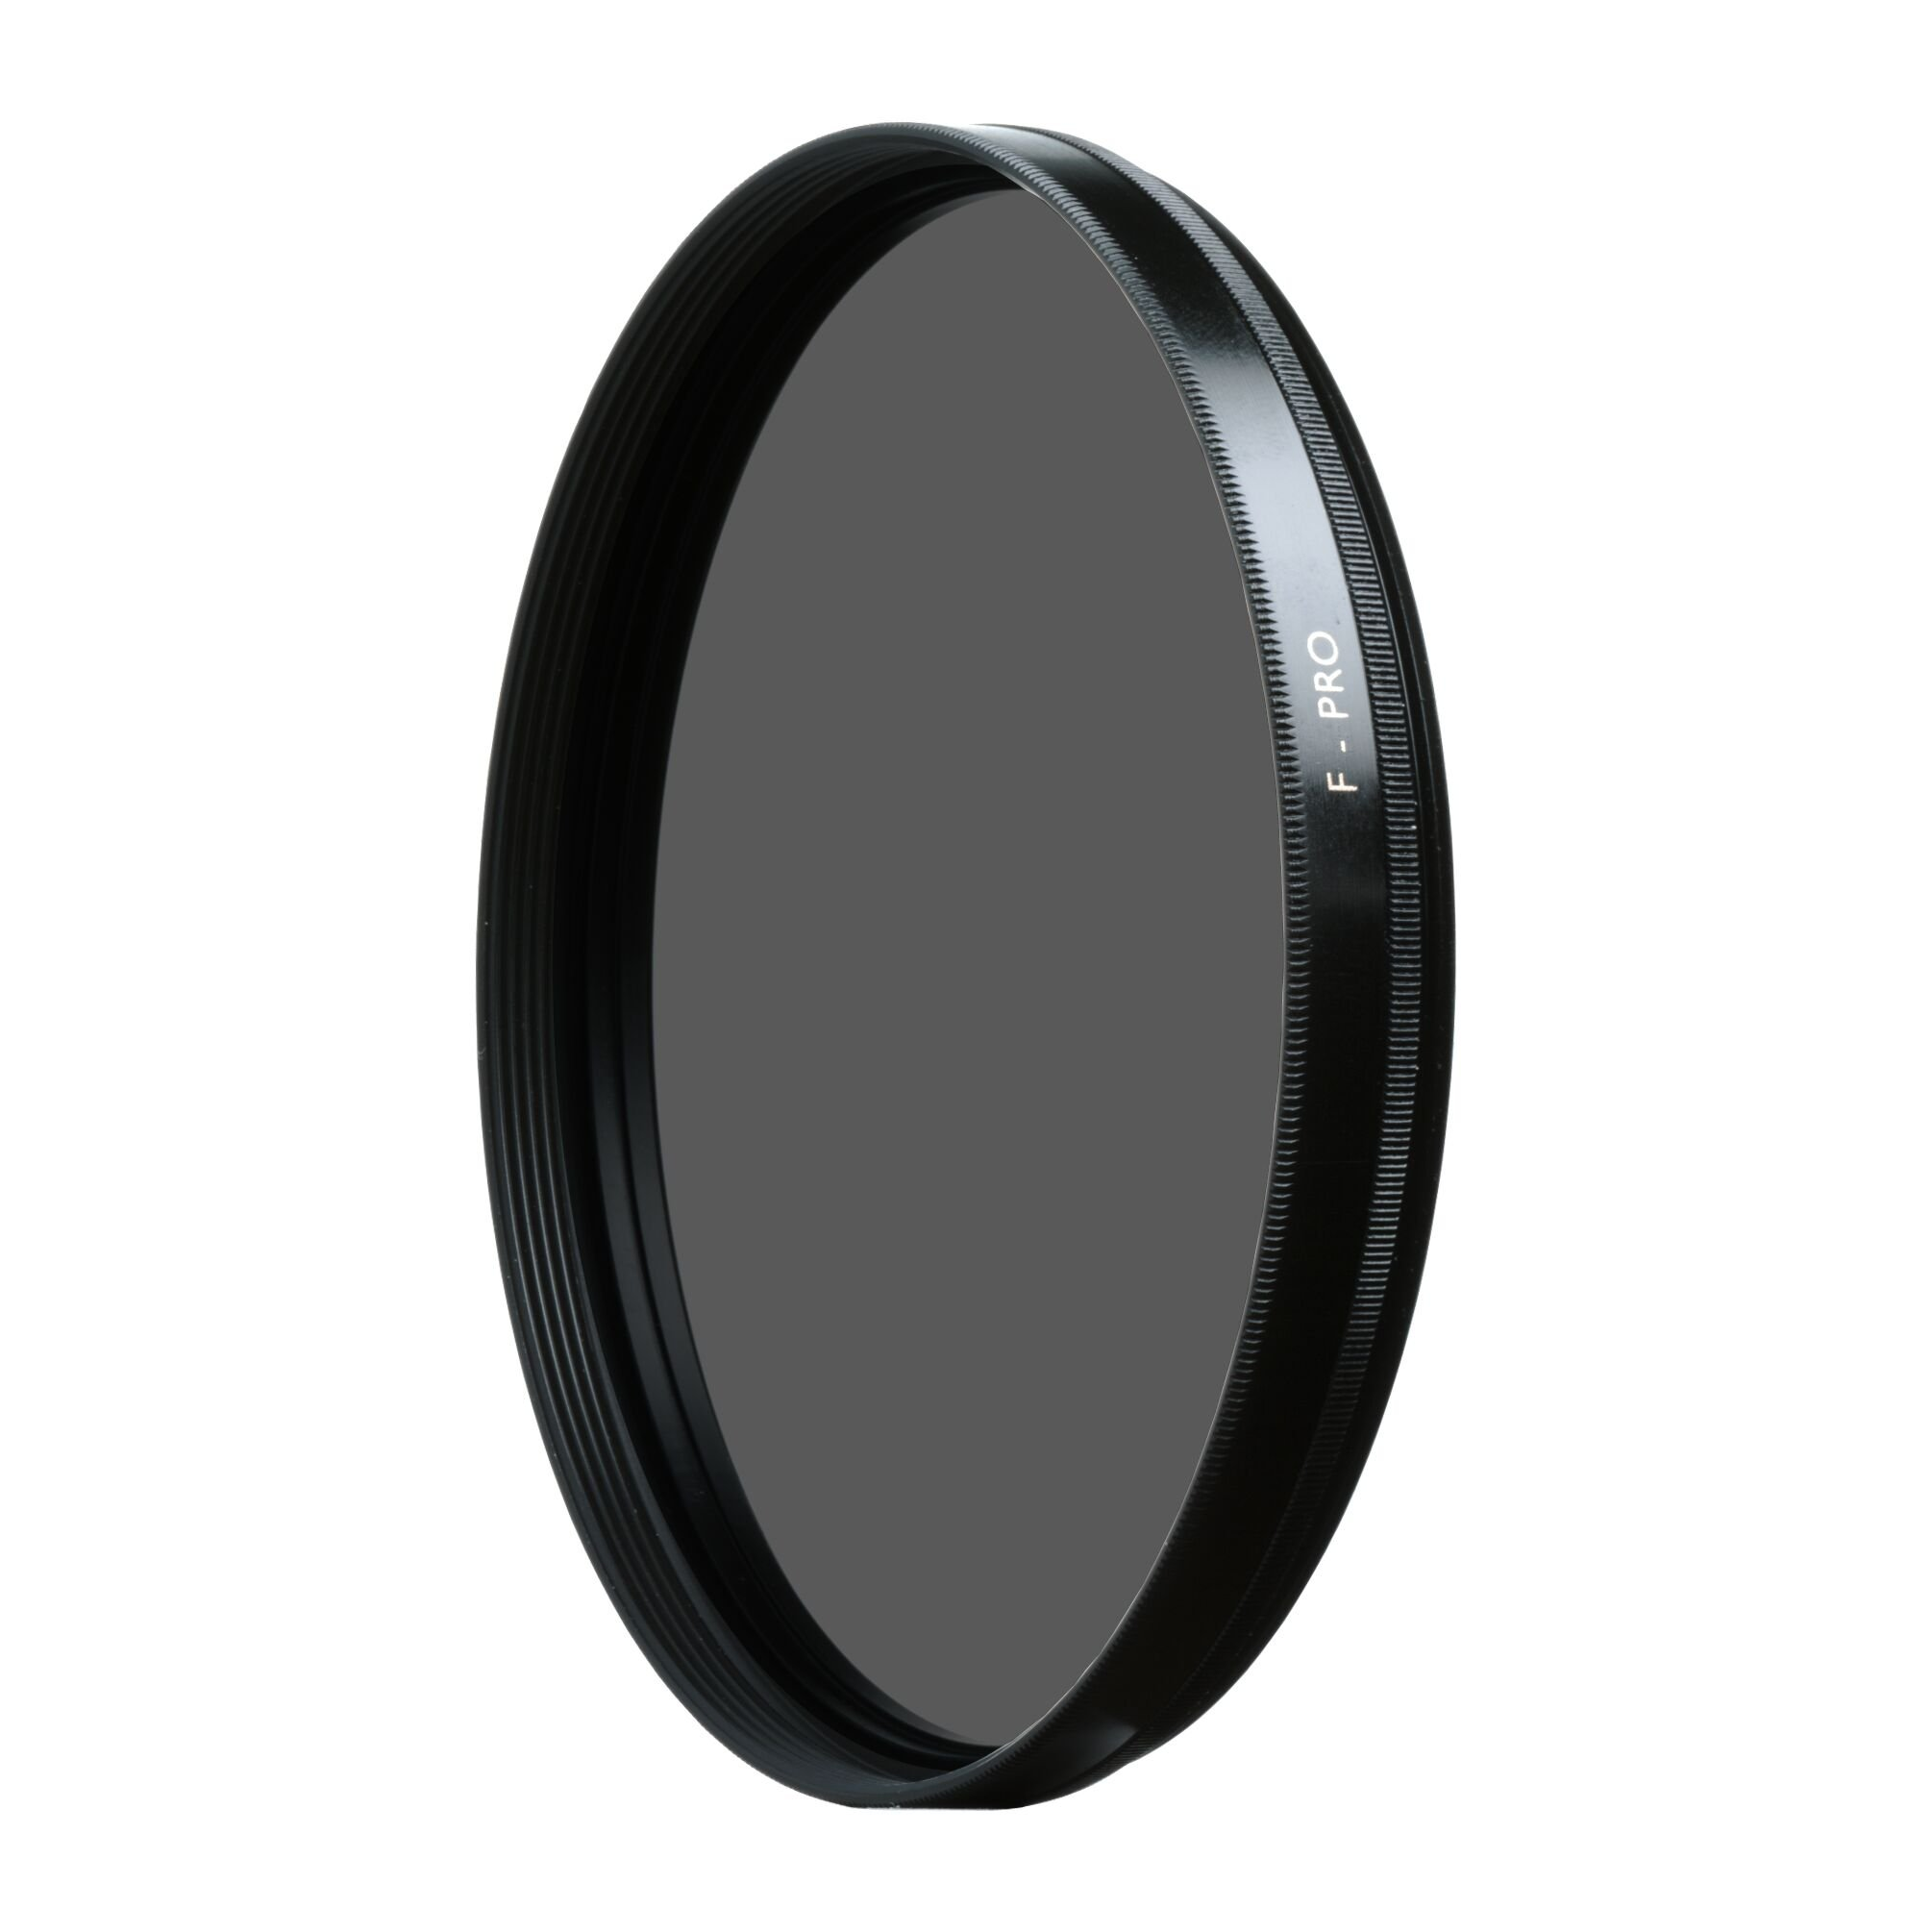 B+W 58mm Kaesemann Circular Polarizer with Multi-Resistant Coating by B + W